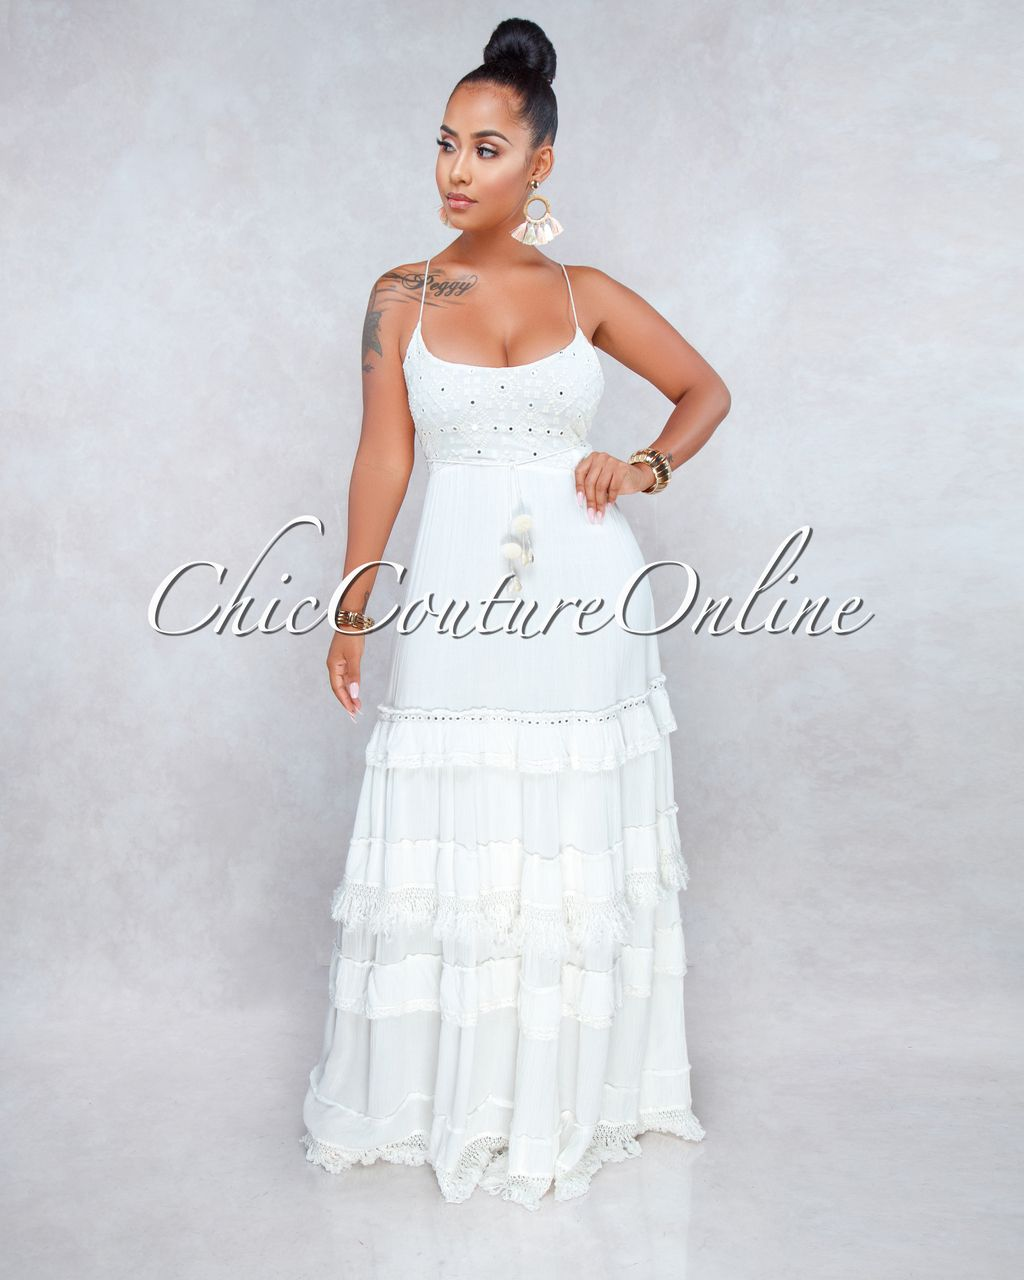 089cc852 Chic Couture Online - Rania Off-White Sequins Accent Tier Maxi Dress,  $150.00 (